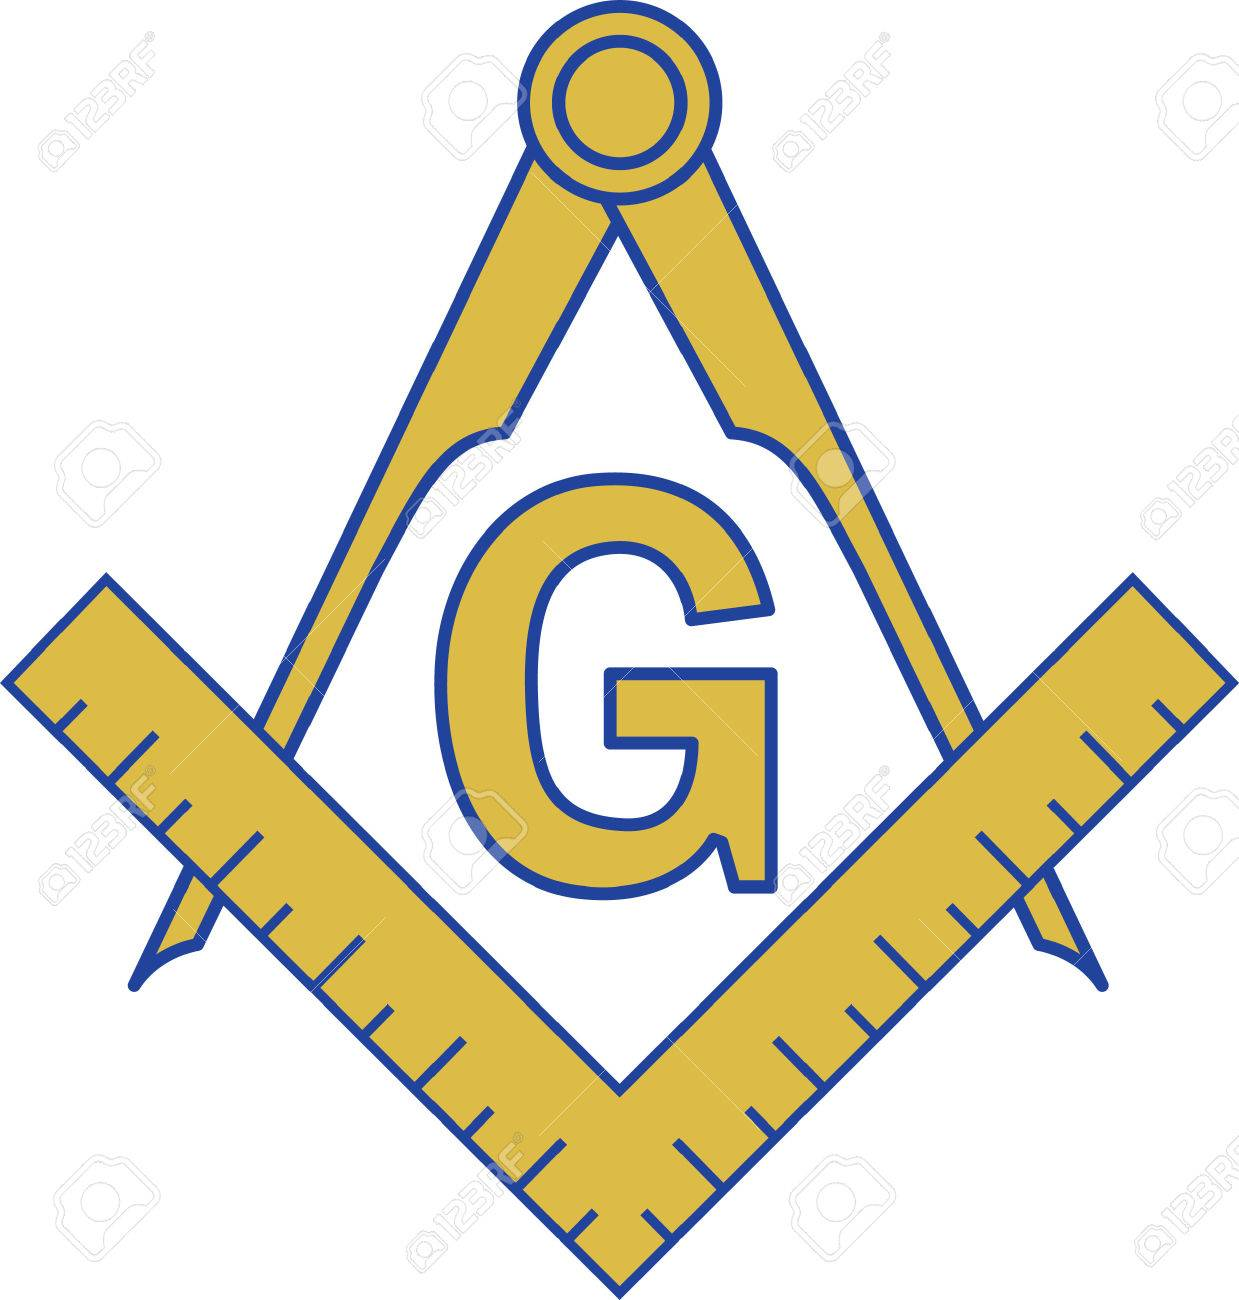 The symbol represents freemasonry. It stands for faith, hope and charity. Add this design to a gift to a Master Mason. Get these designs from Great Notions. - 45057331